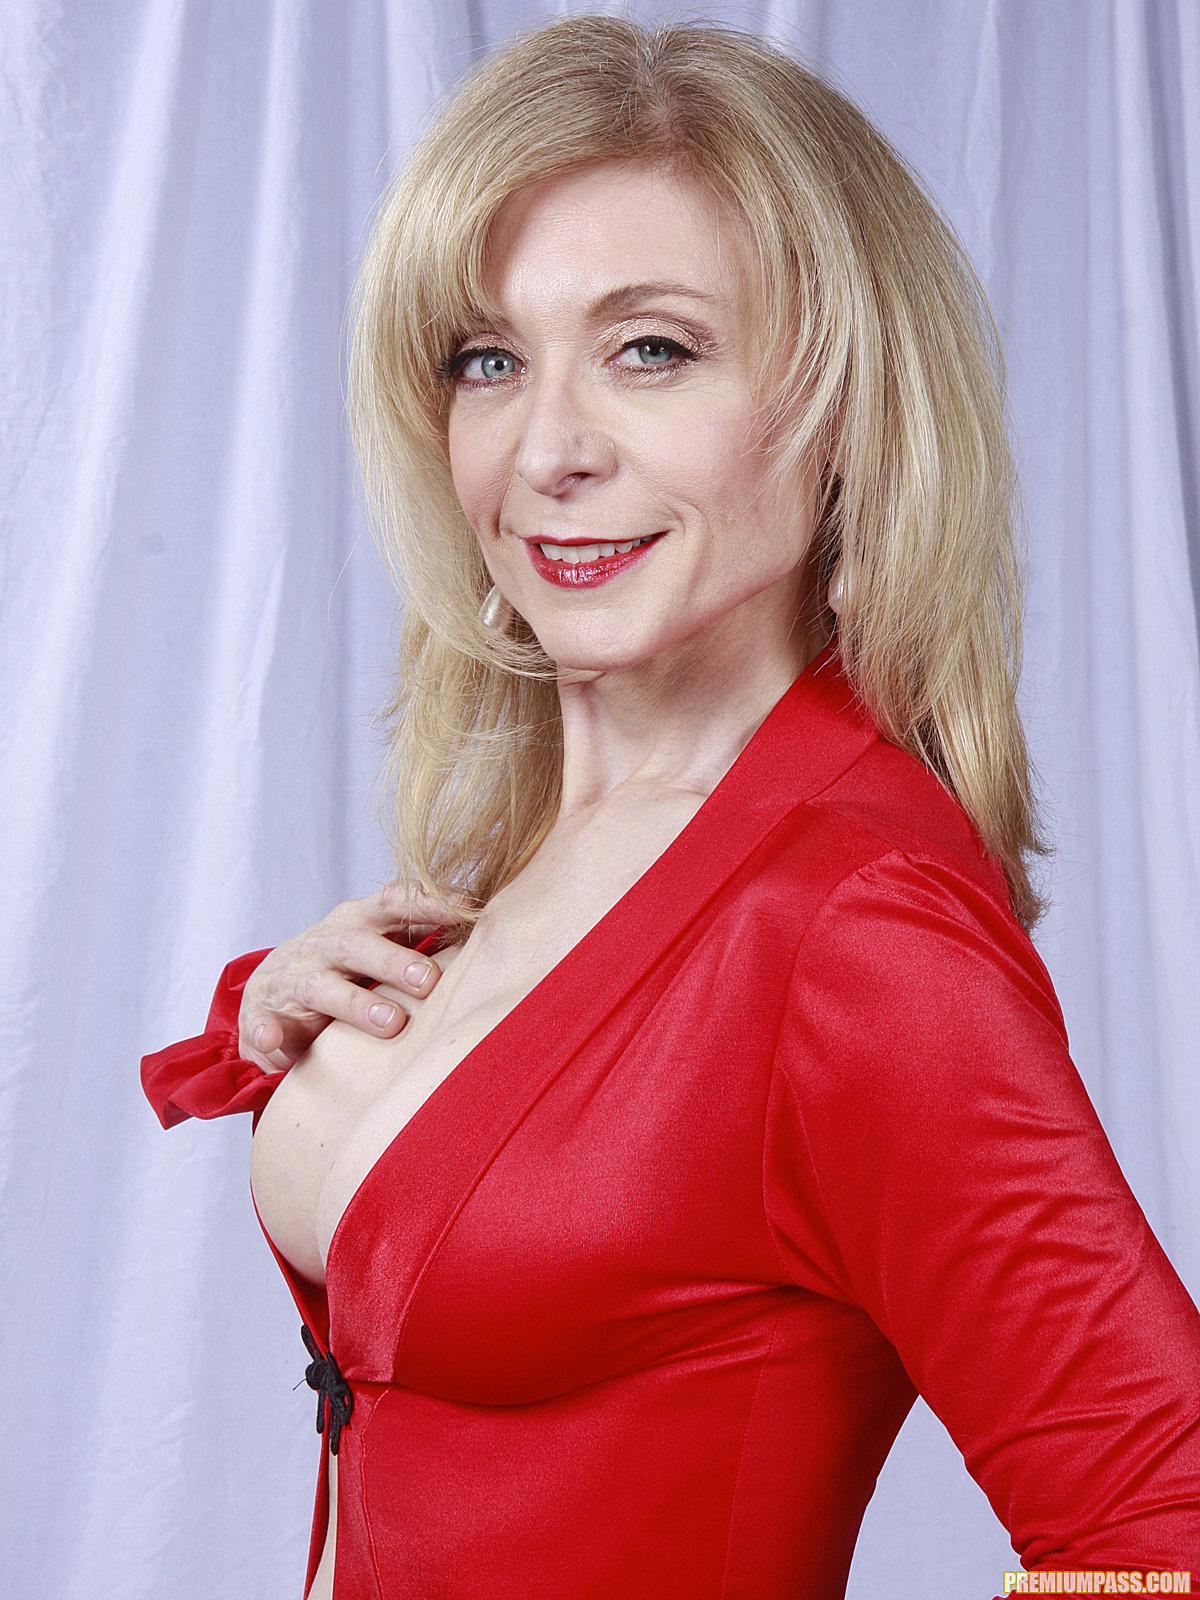 Mature lady Nina Hartley denudes ripe melons and poses in stockings  493085